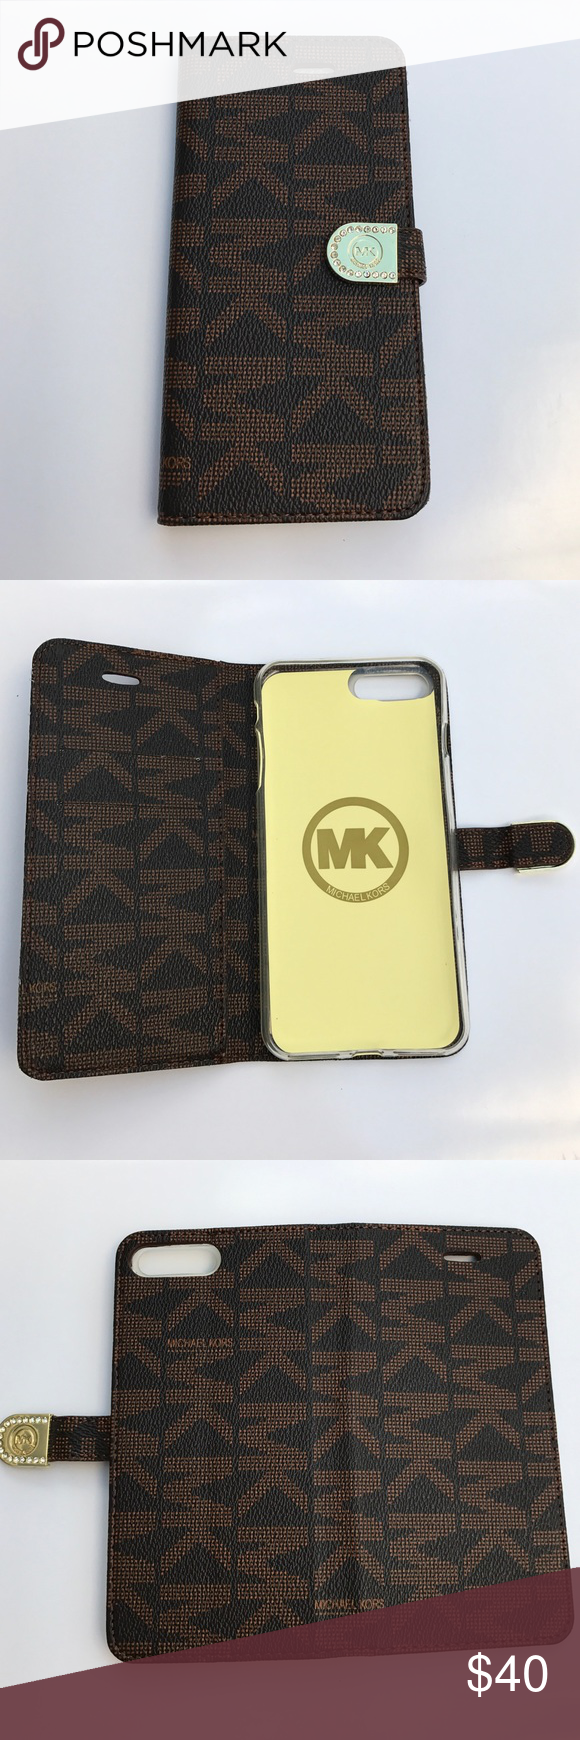 new product db972 eda2d Michael Kors wallet case iPhone 7 Plus brown New Michael Kors iPhone ...